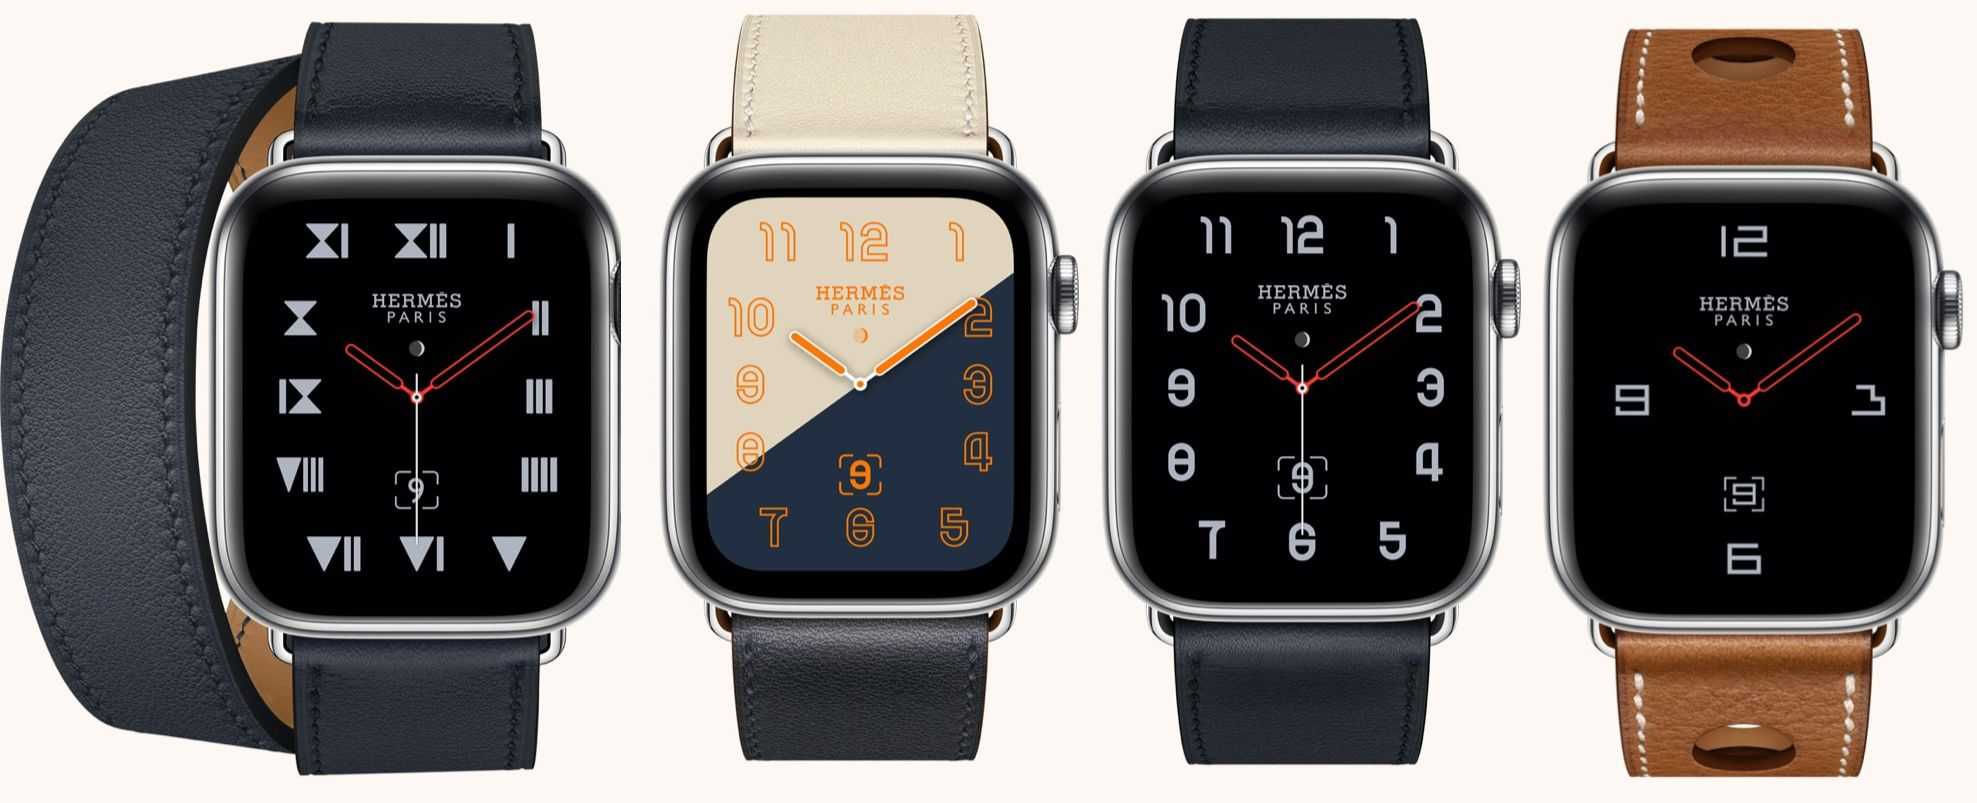 Hermès Watchfaces